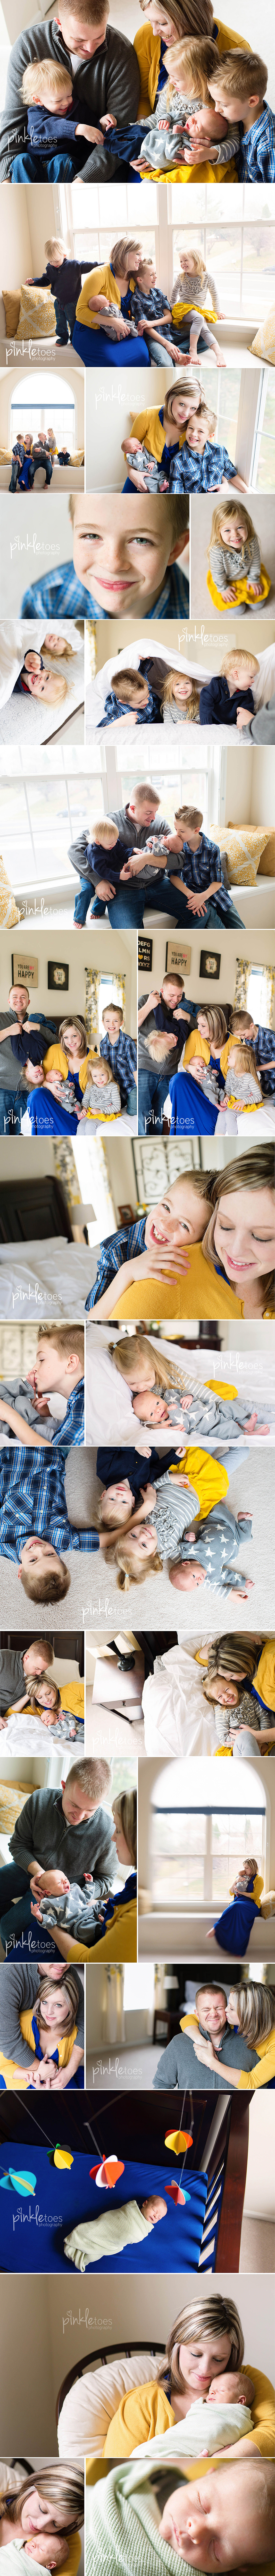 rb-austin-newborn-lifestyle-fun-candid-baby-family-photographer